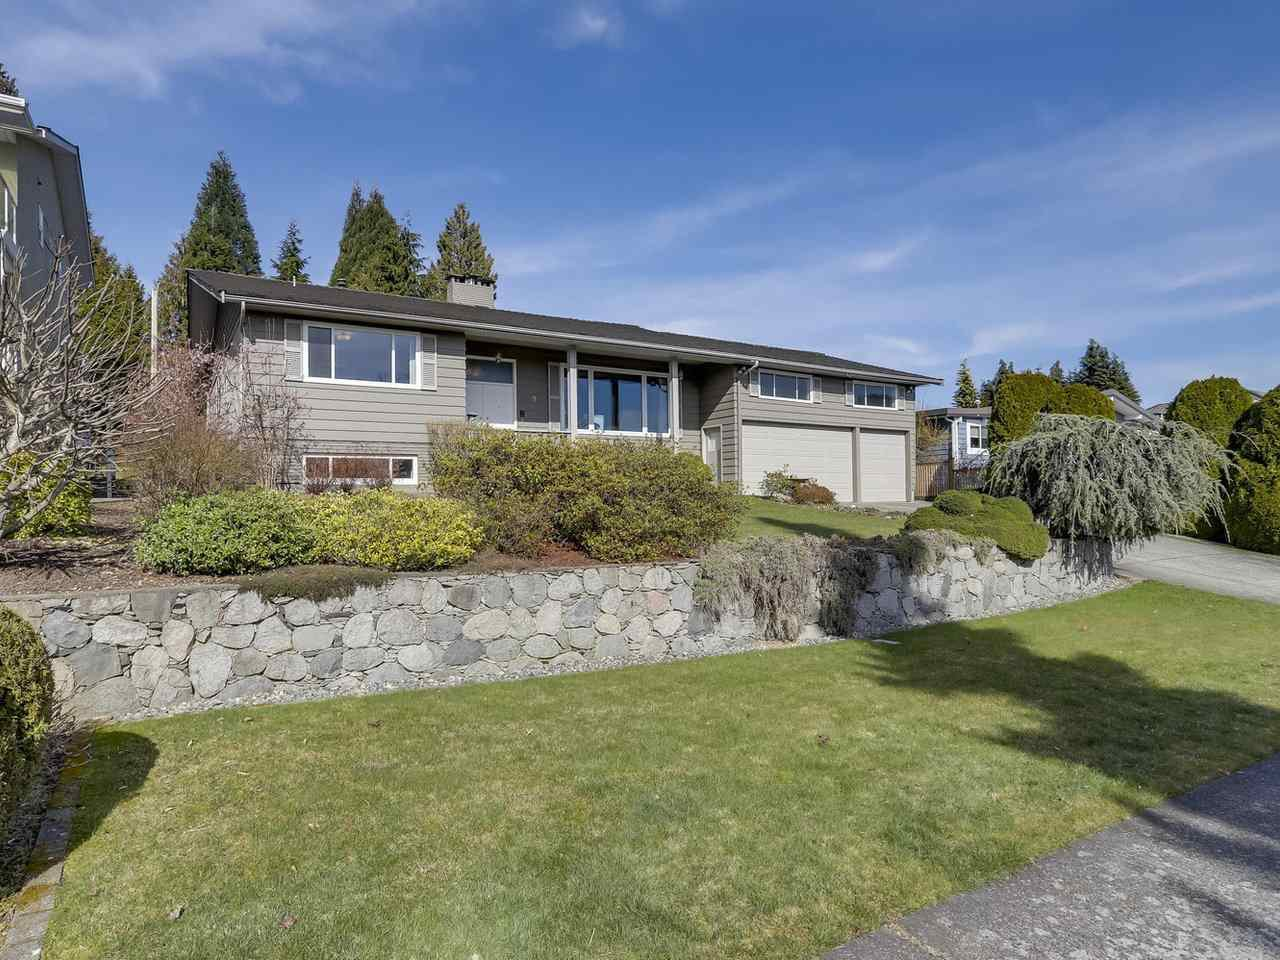 Main Photo: 5495 MORELAND DRIVE in Burnaby: Deer Lake Place House for sale (Burnaby South)  : MLS®# R2247075